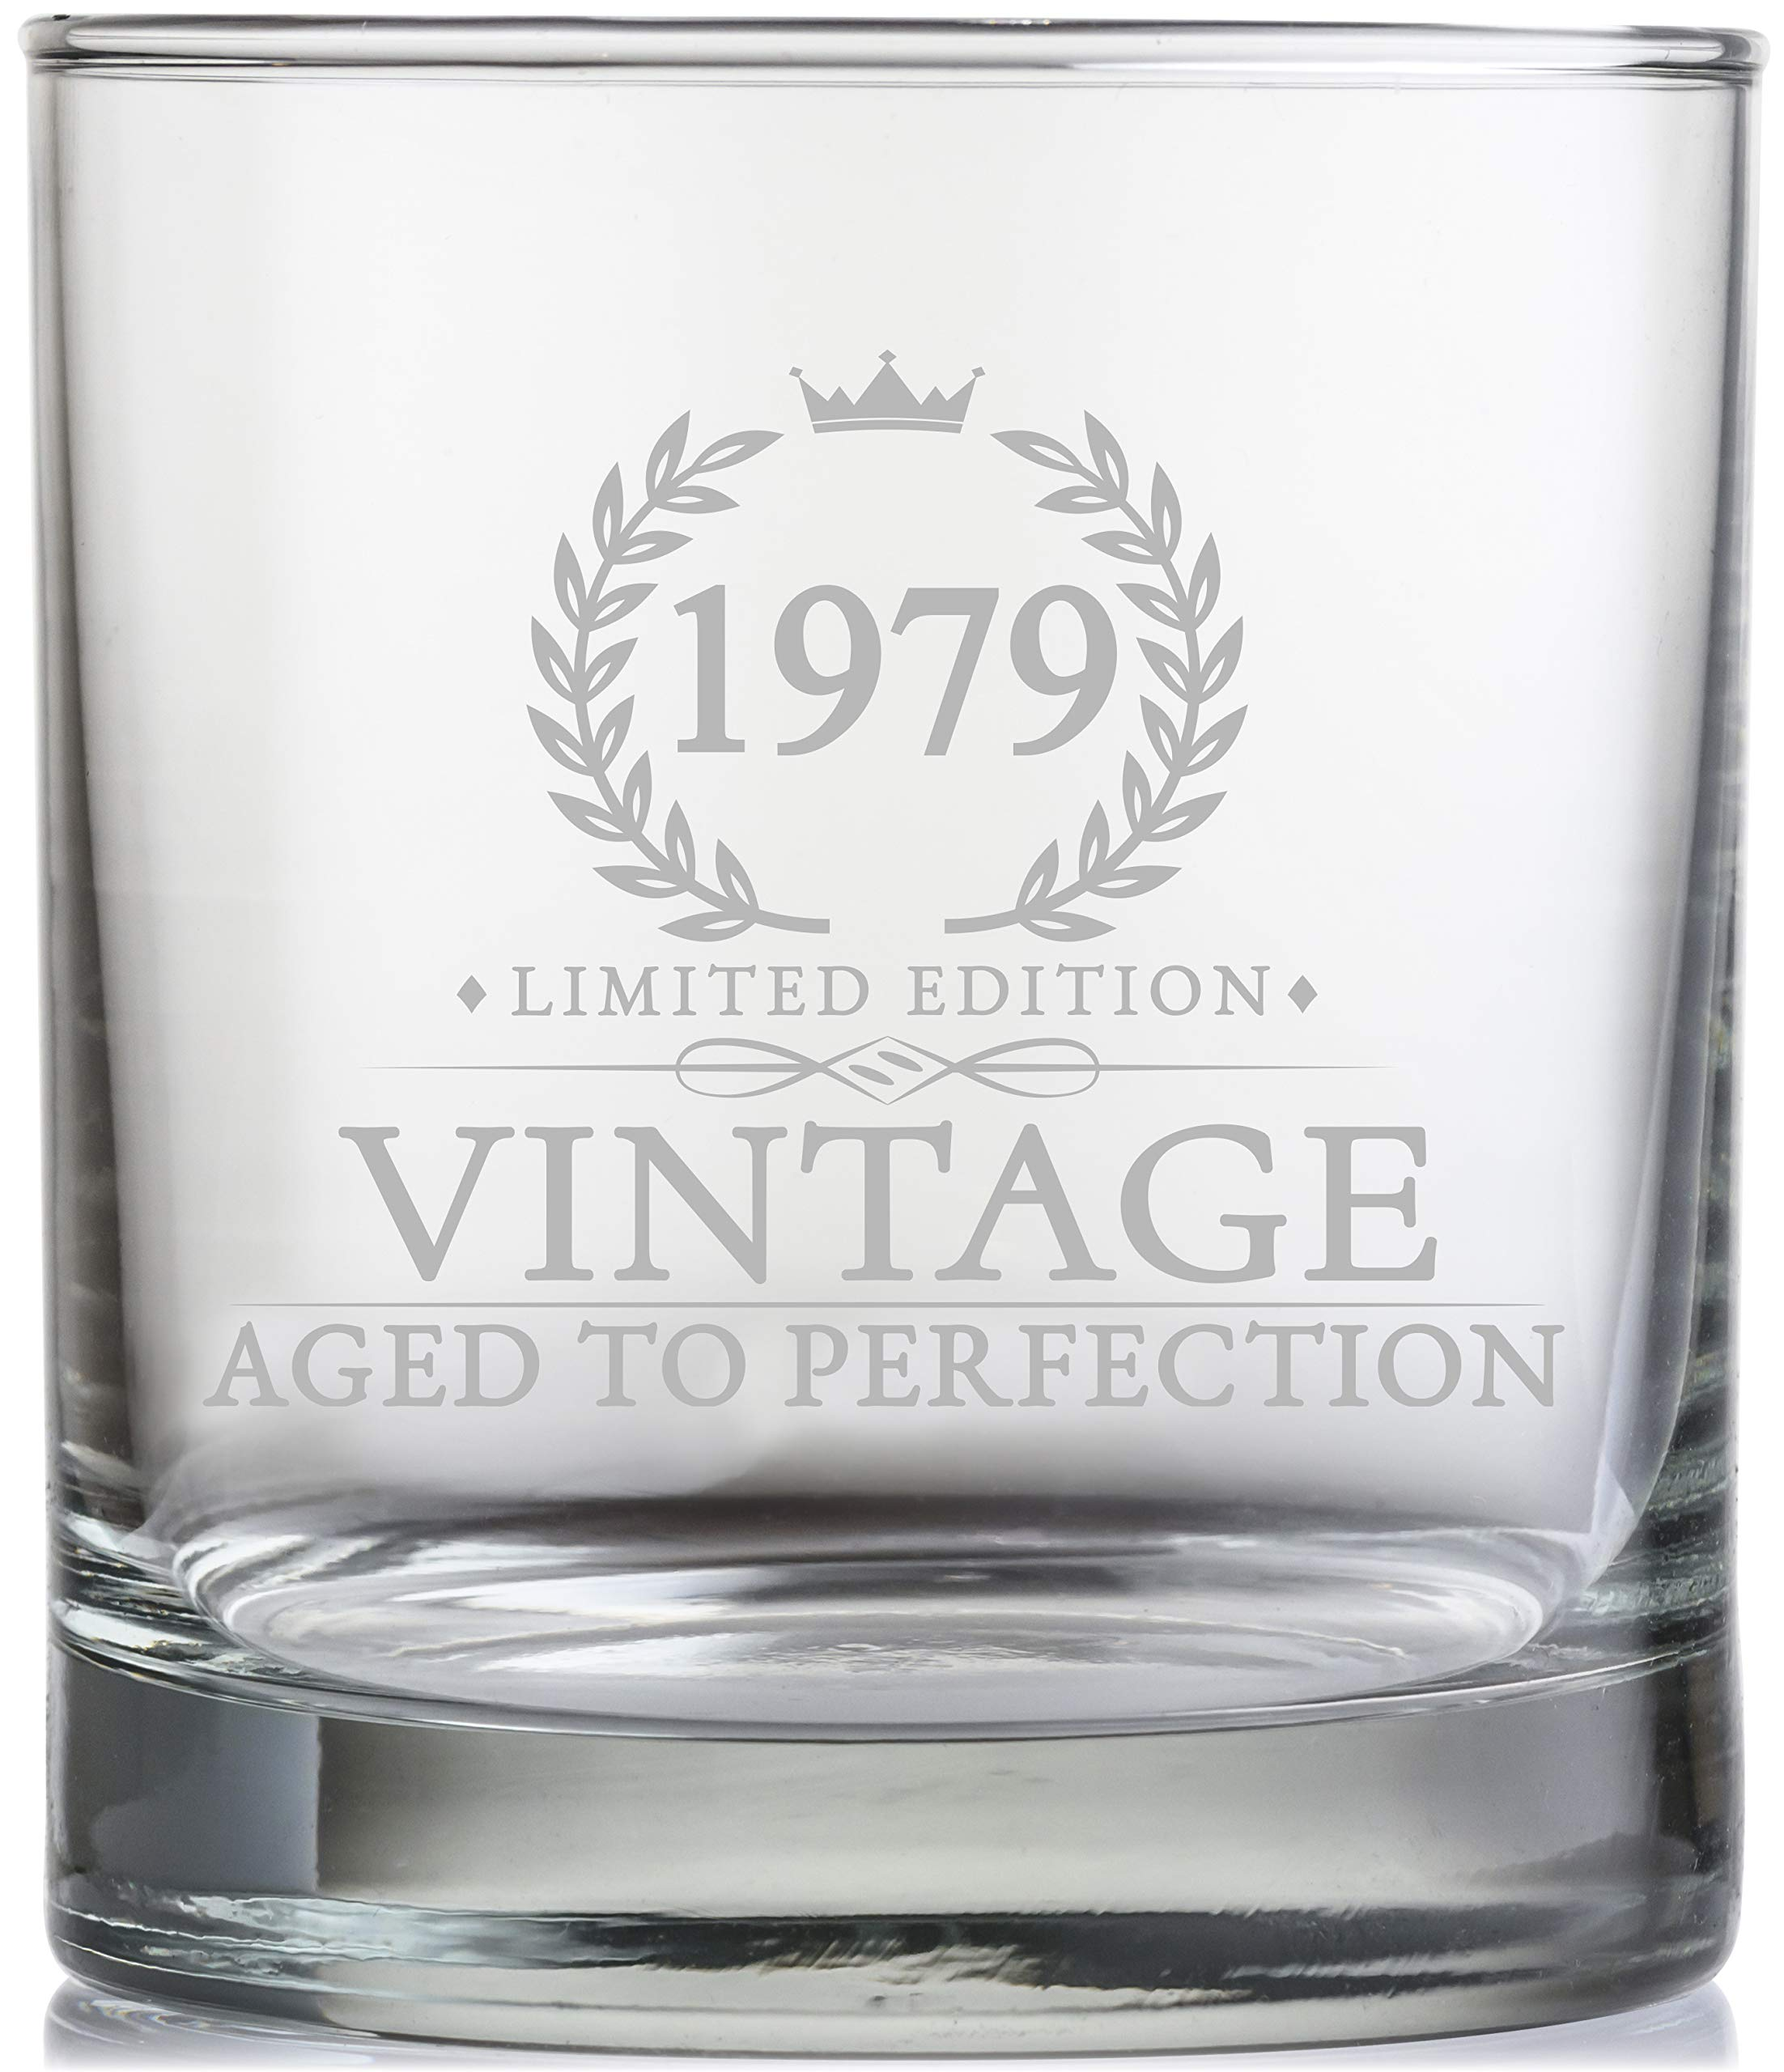 40th Birthday Gifts for Men Turning 40 Years Old - 11 oz. Vintage 1979 Whiskey Glass - Funny Fortieth Whisky, Bourbon, Scotch Gift Ideas, Party Decorations and Supplies for Him, Husband, Dad, Man